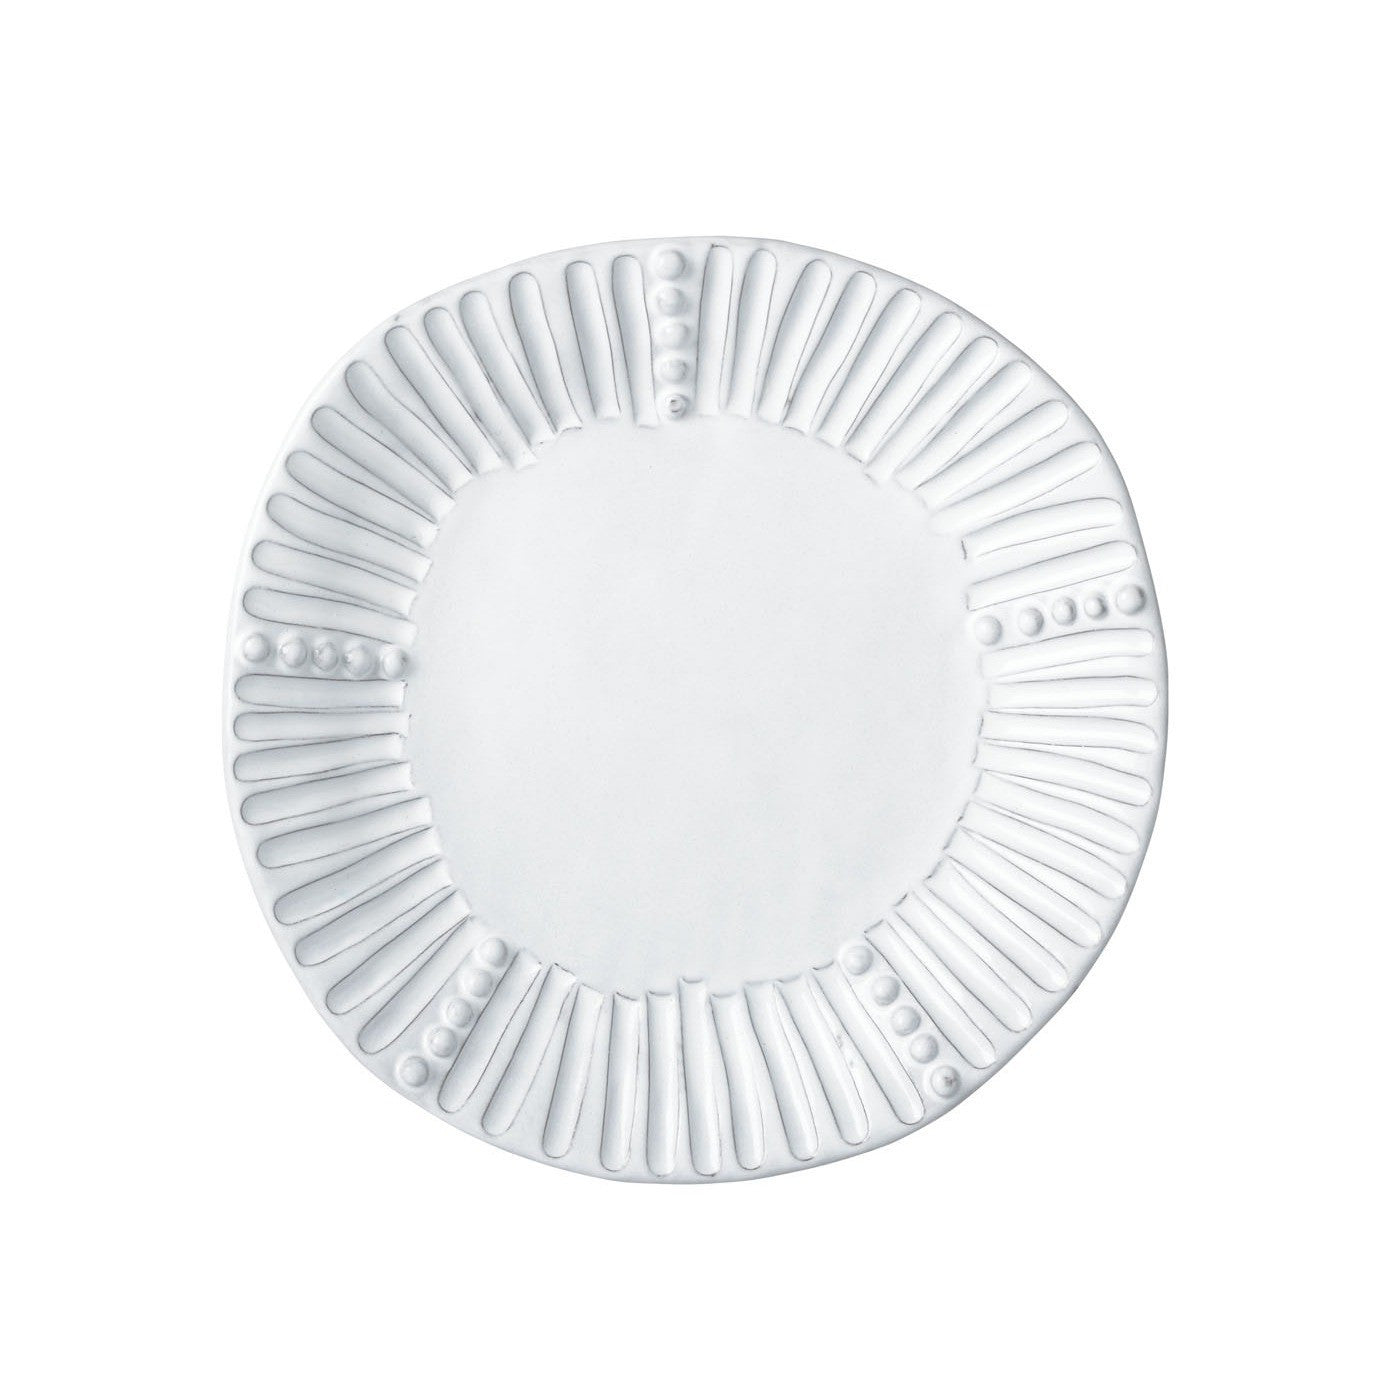 Incanto Stripe Salad Plate - Set of 4 , tableware - Vietri, Pezzo Bello  - 1